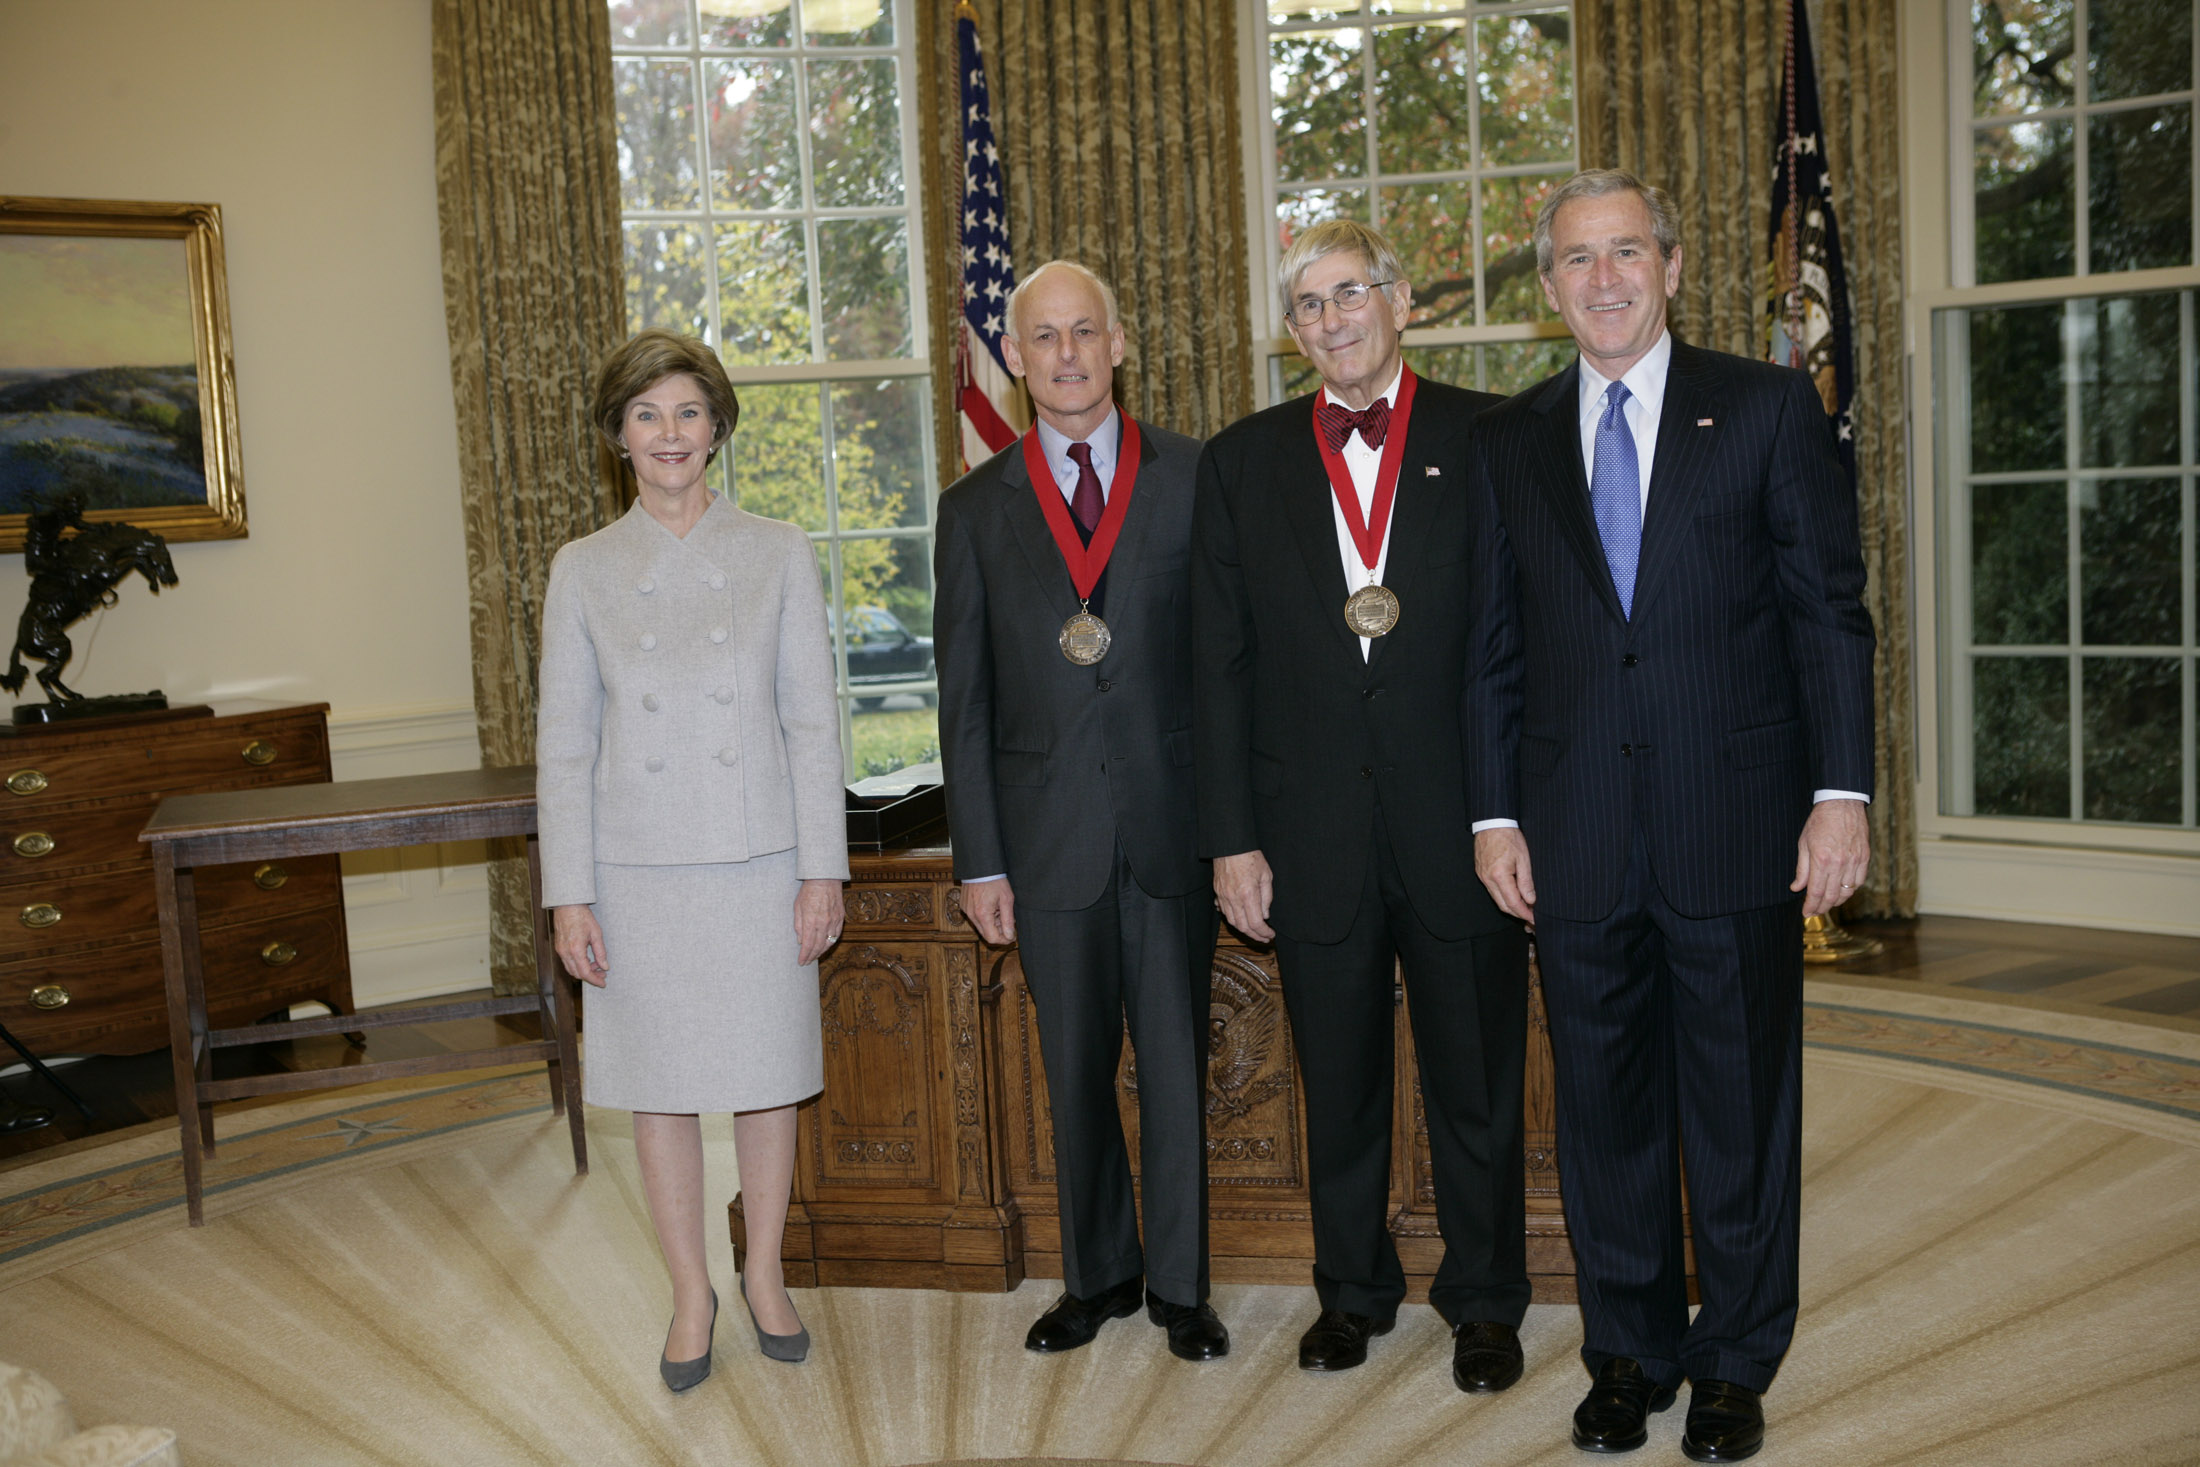 Lewis Lehrman and Richard Gilder receive the 2005 National Humanities Medal at the Whitehouse with President George W. Bush and First Lady Laura Bush